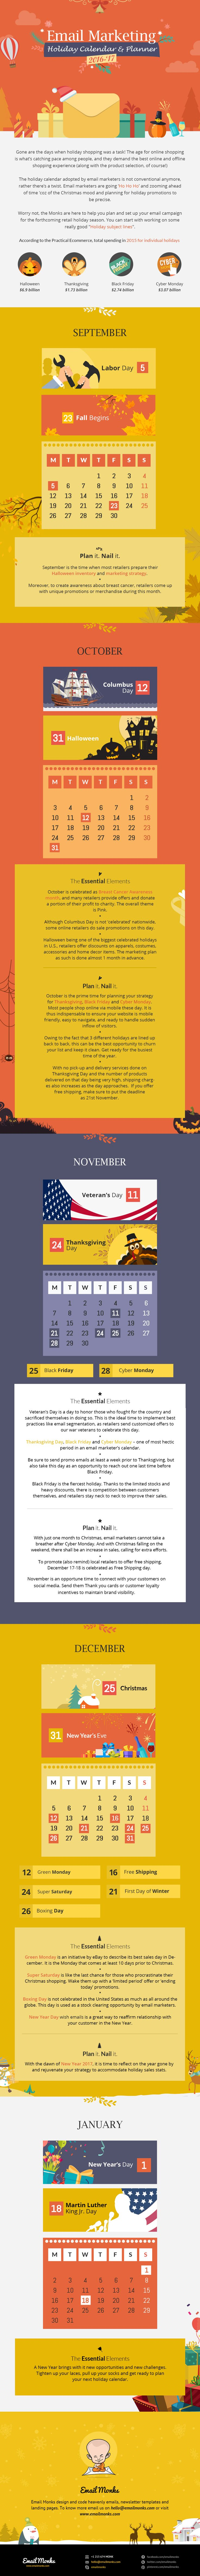 Email Marketing Holiday Calendar and Planner 2016 [Infographic]